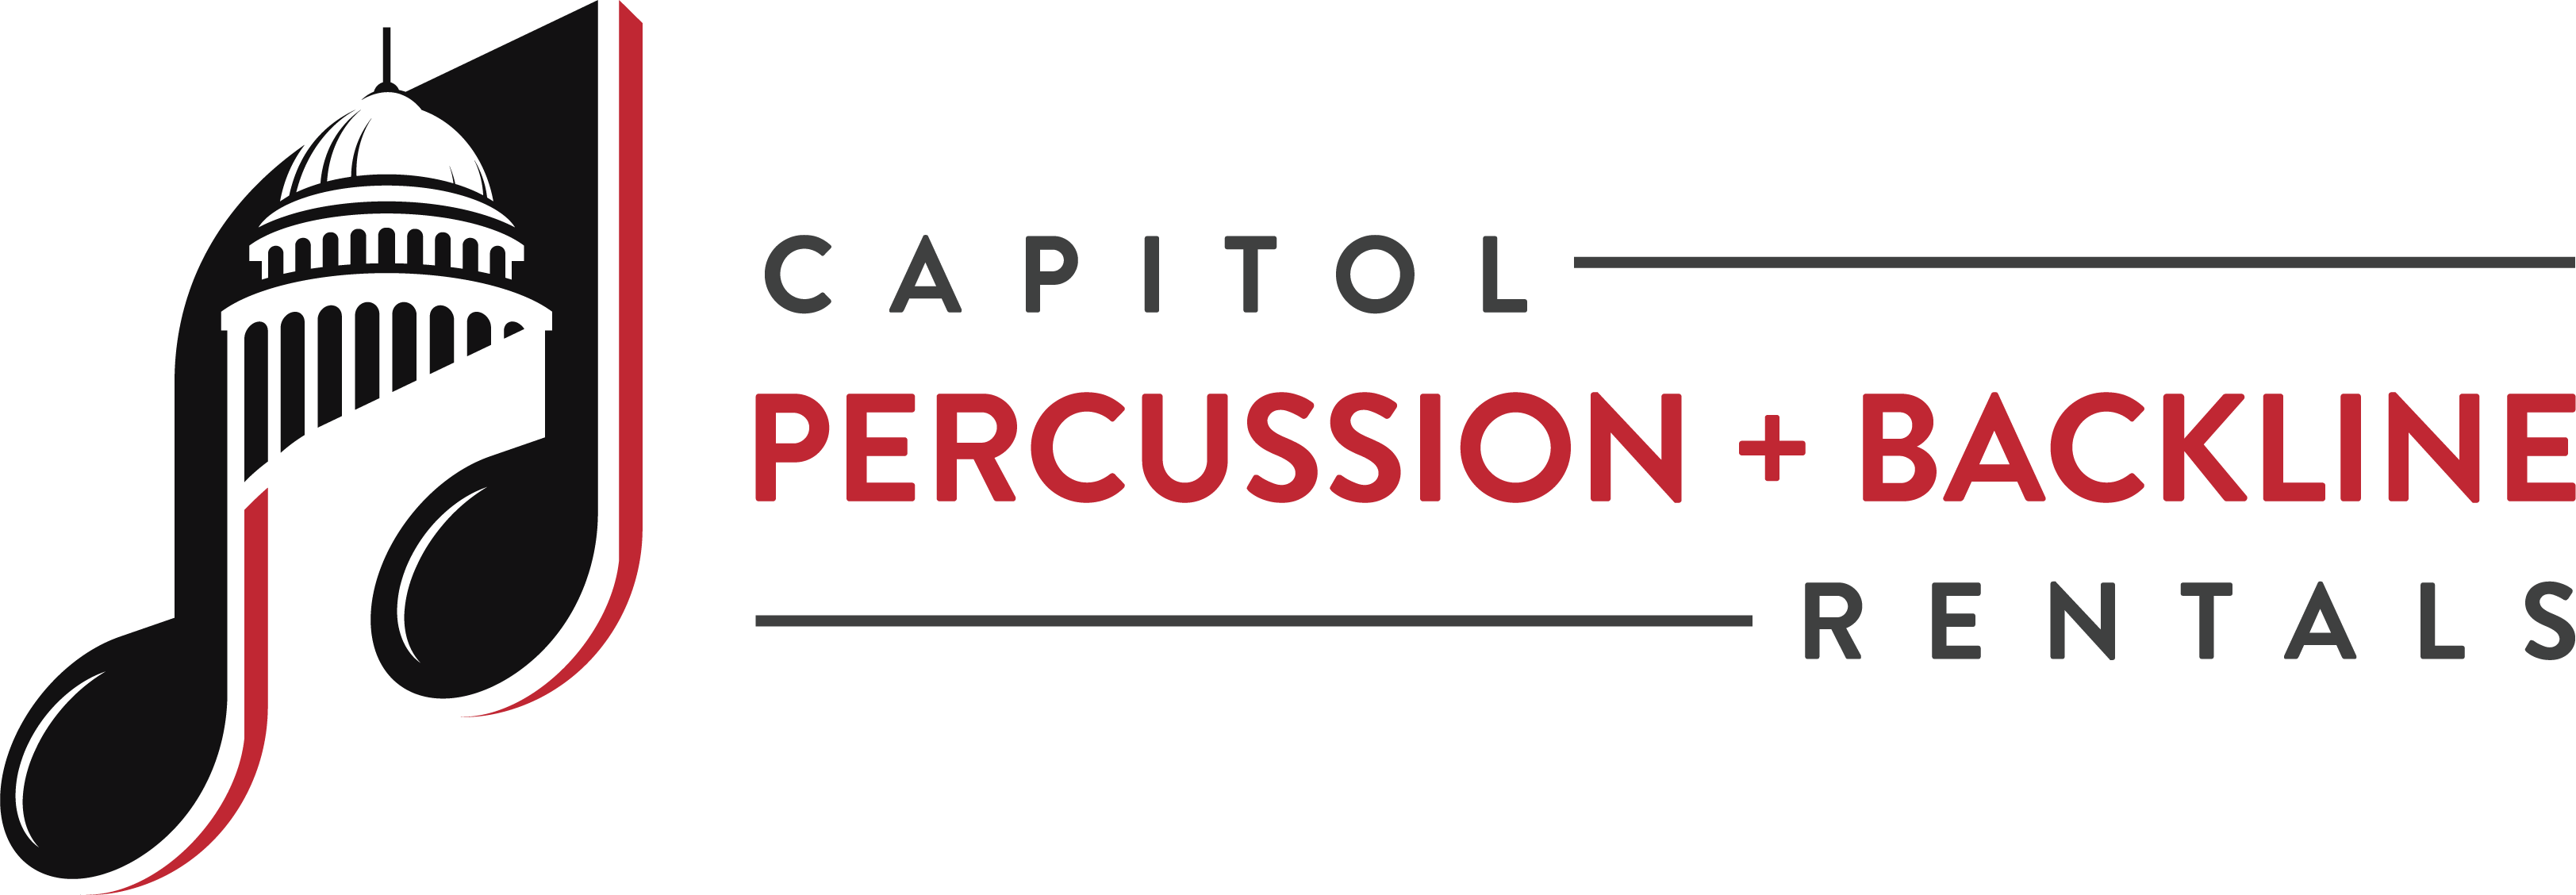 Capitol Percussion + Backline